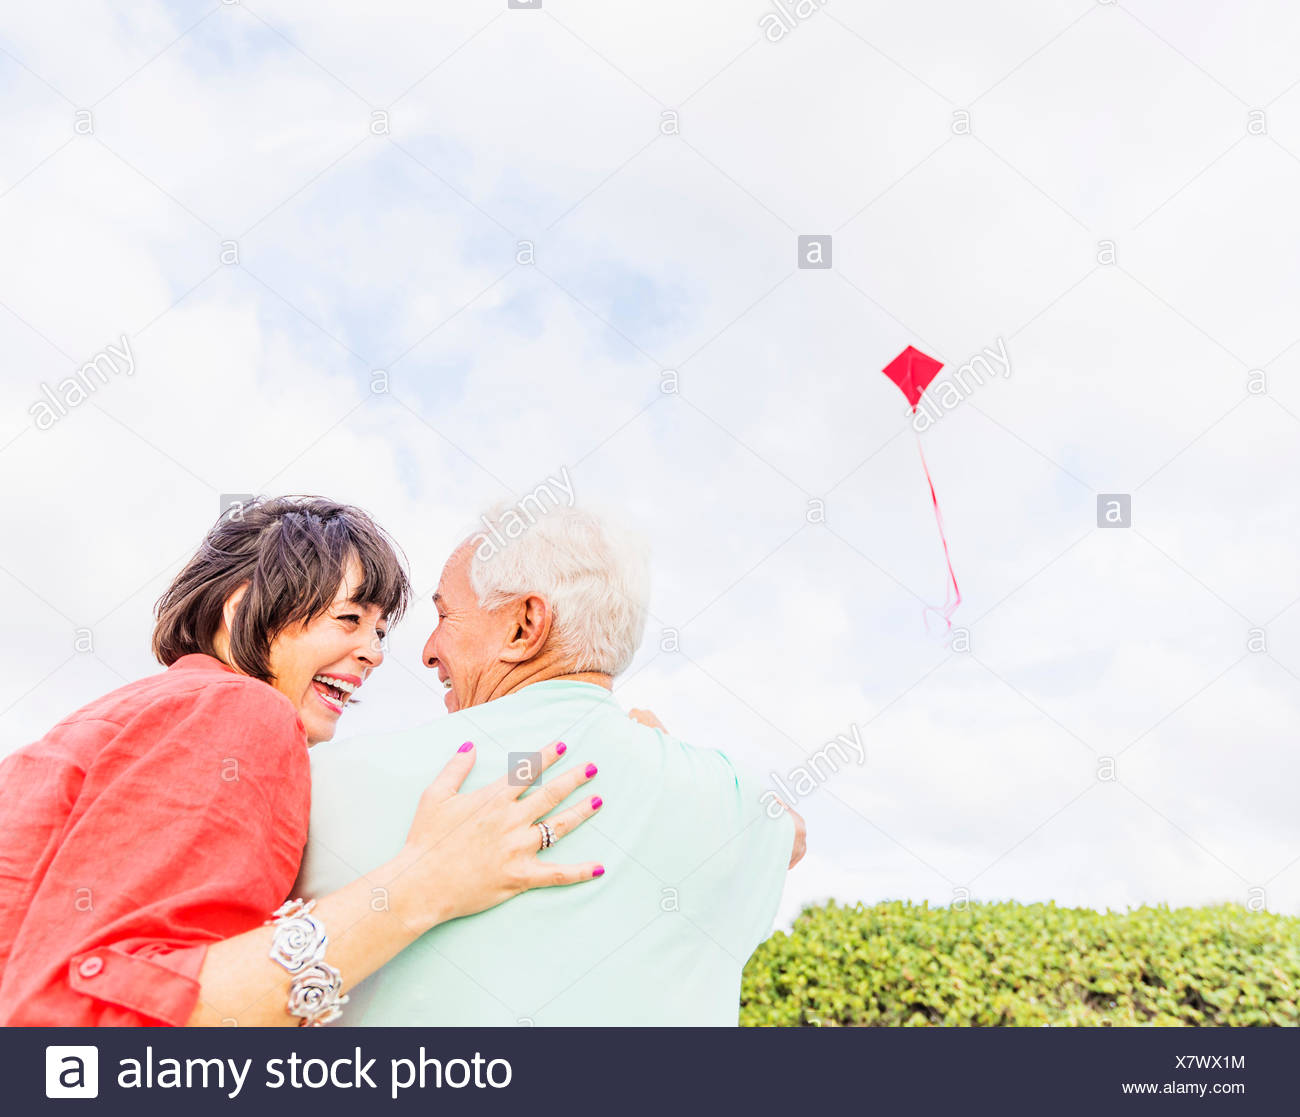 Low-angle view of couple flying kite together Stock Photo